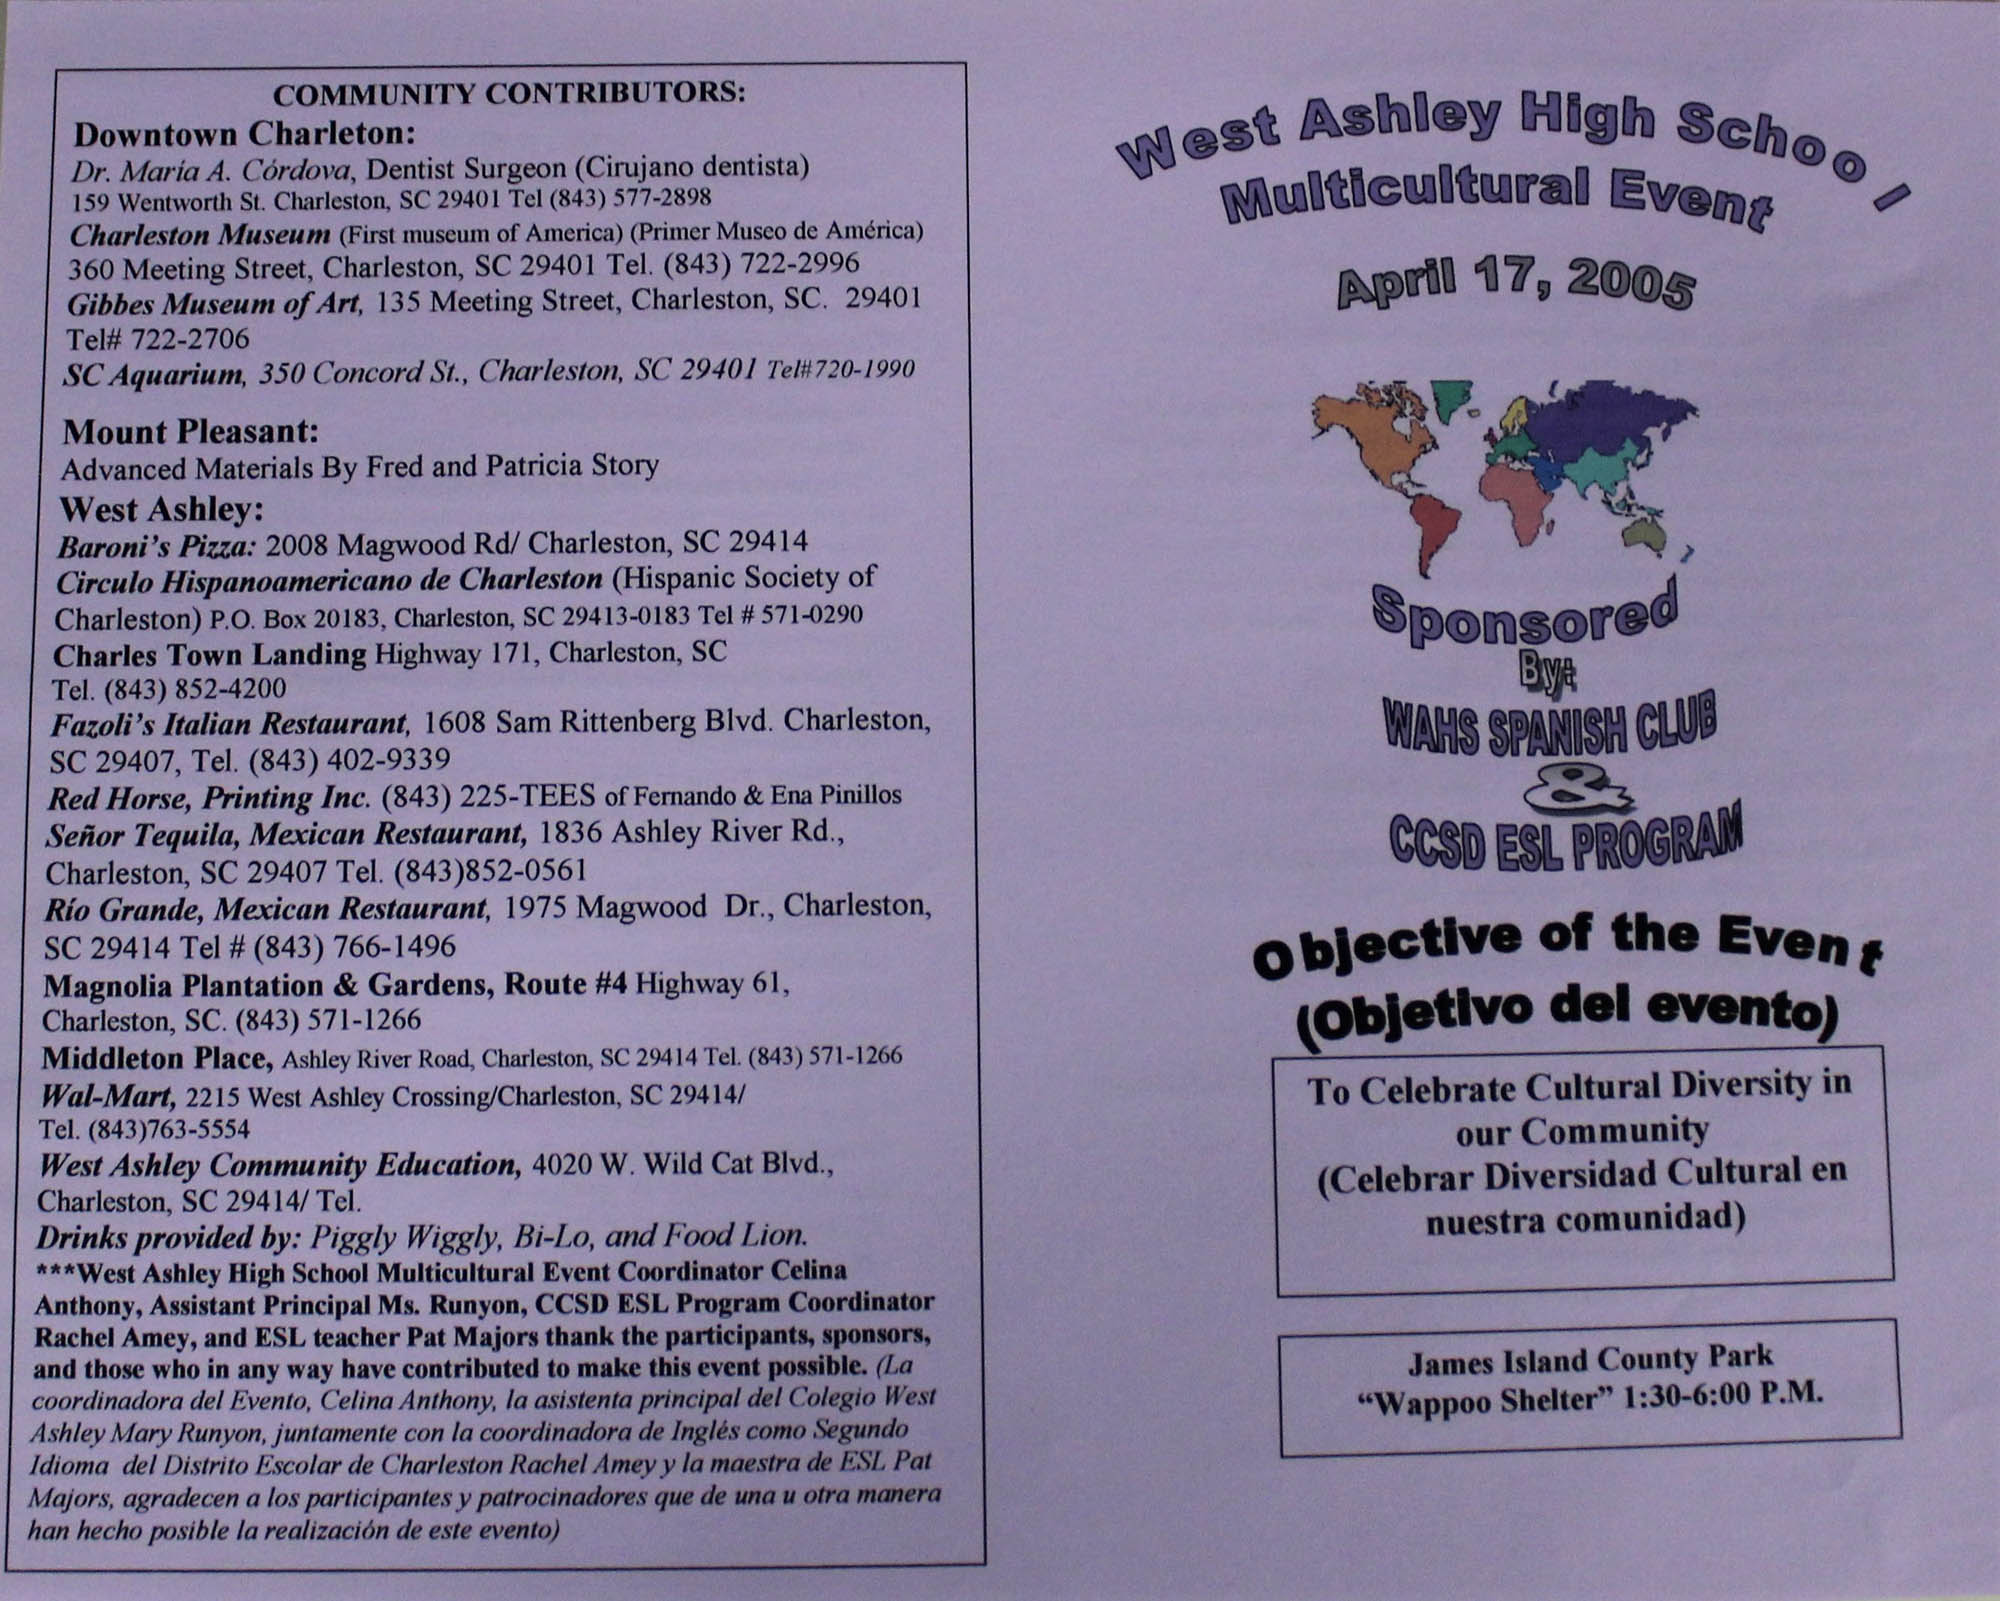 Evento multicultural organizado por la escuela West Ashley High  /  West Ashley High Multicultural Event